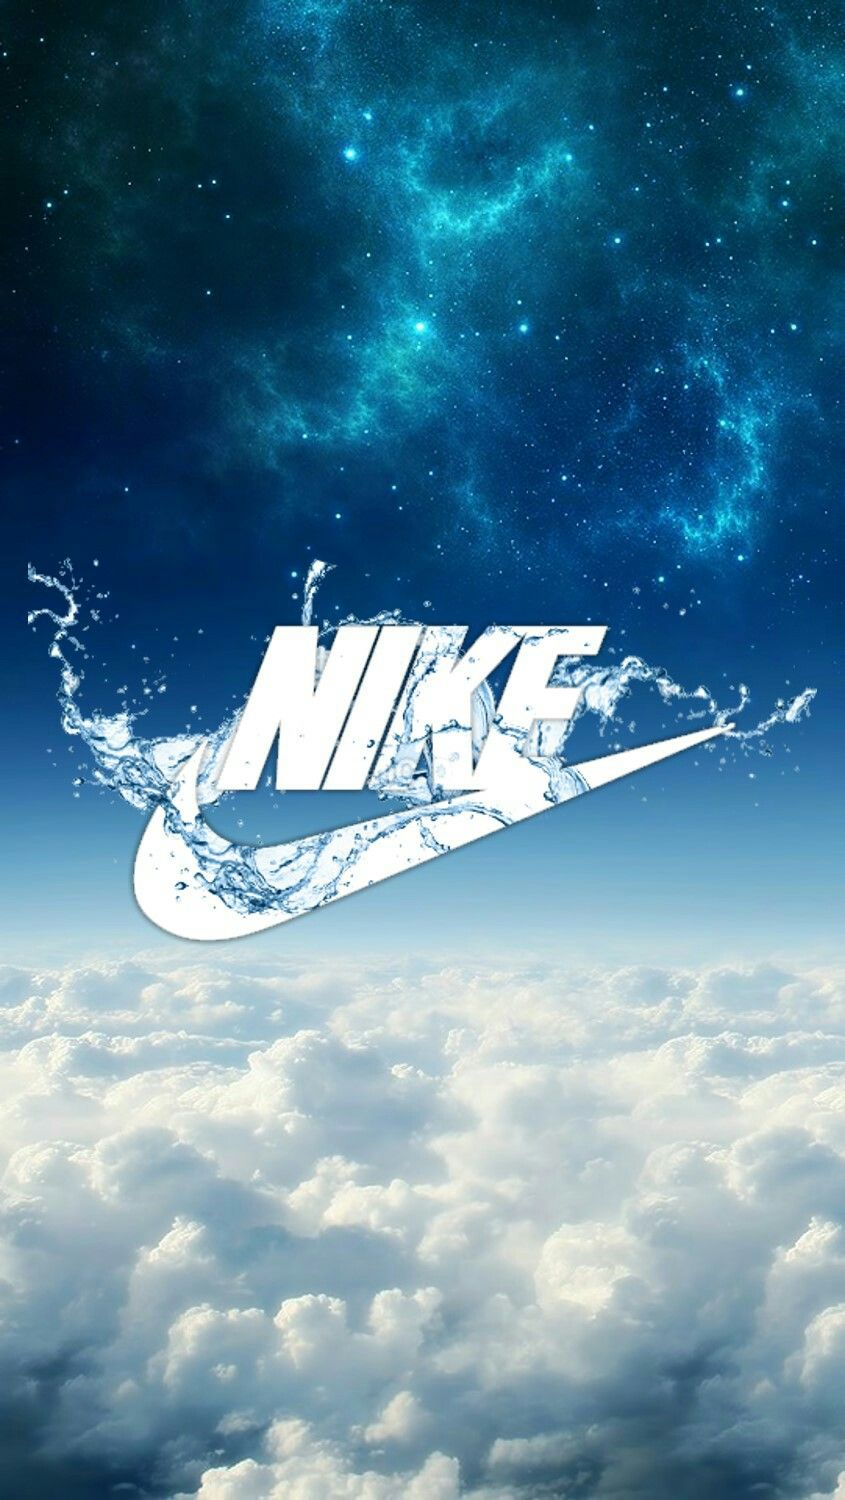 Keep Your Head Up In The Clouds And Just Do It Nike Wallpaper Adidas Wallpapers Hypebeast Wallpaper